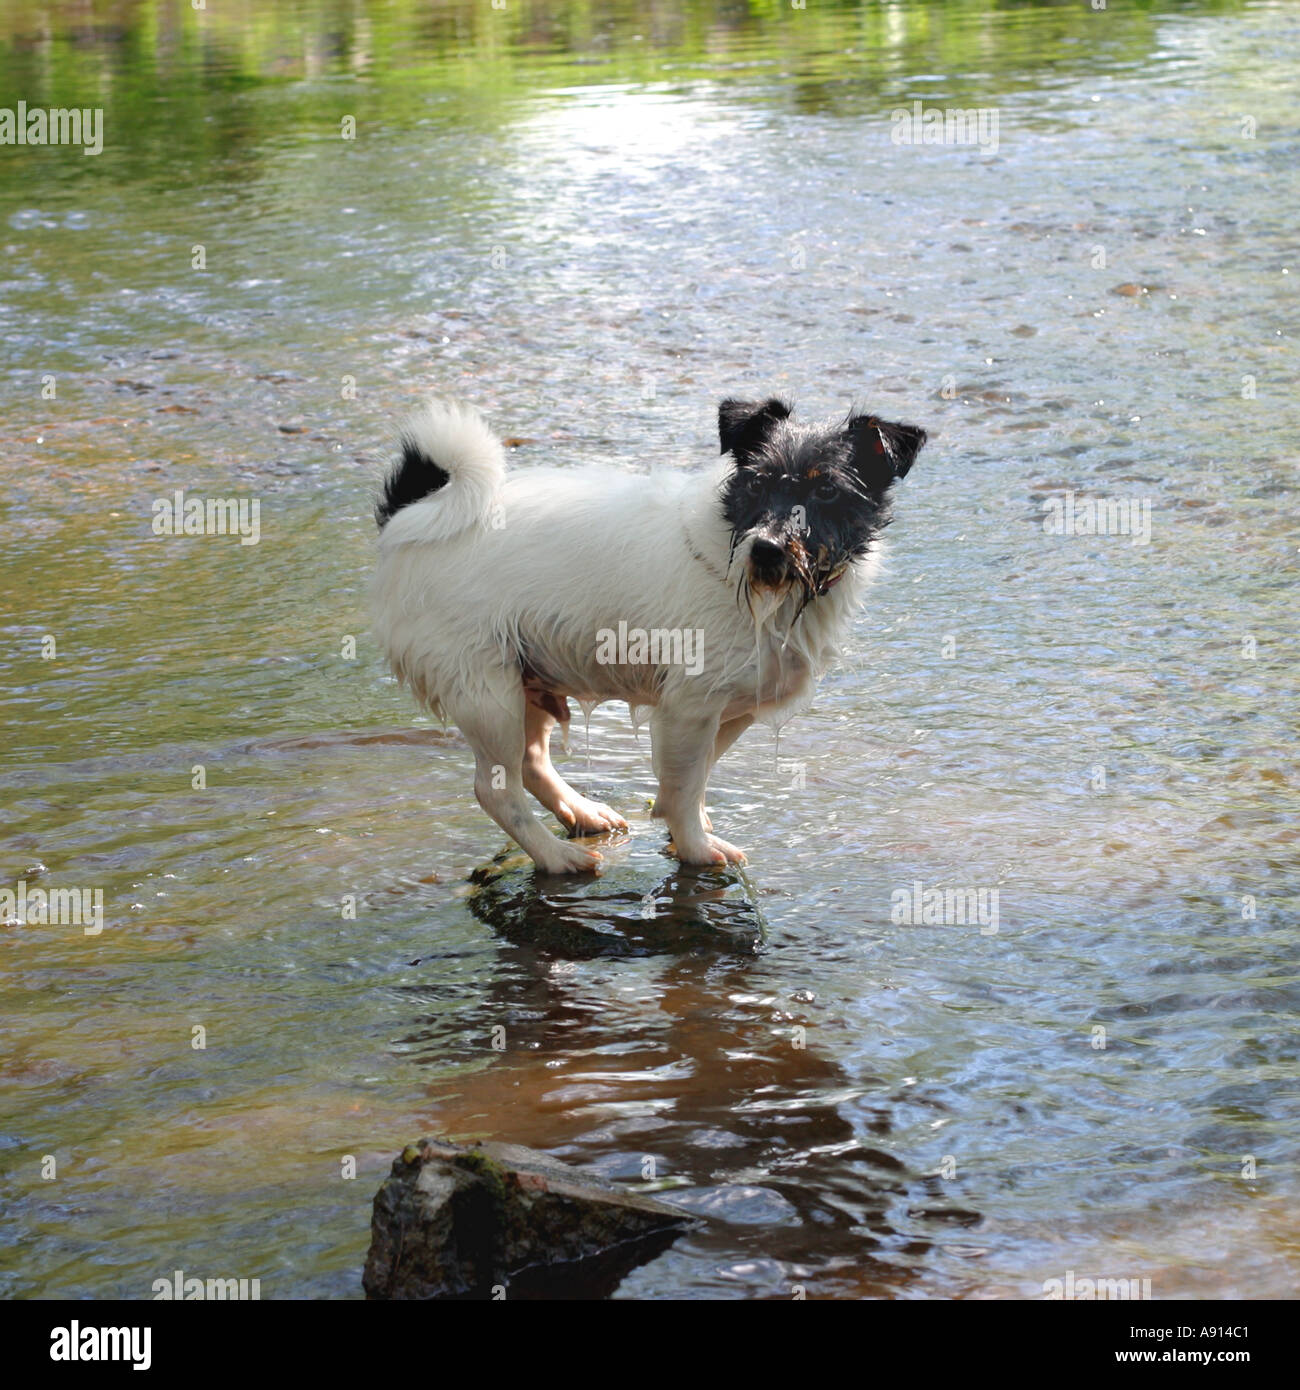 a-small-terrier-stands-on-a-rock-in-the-